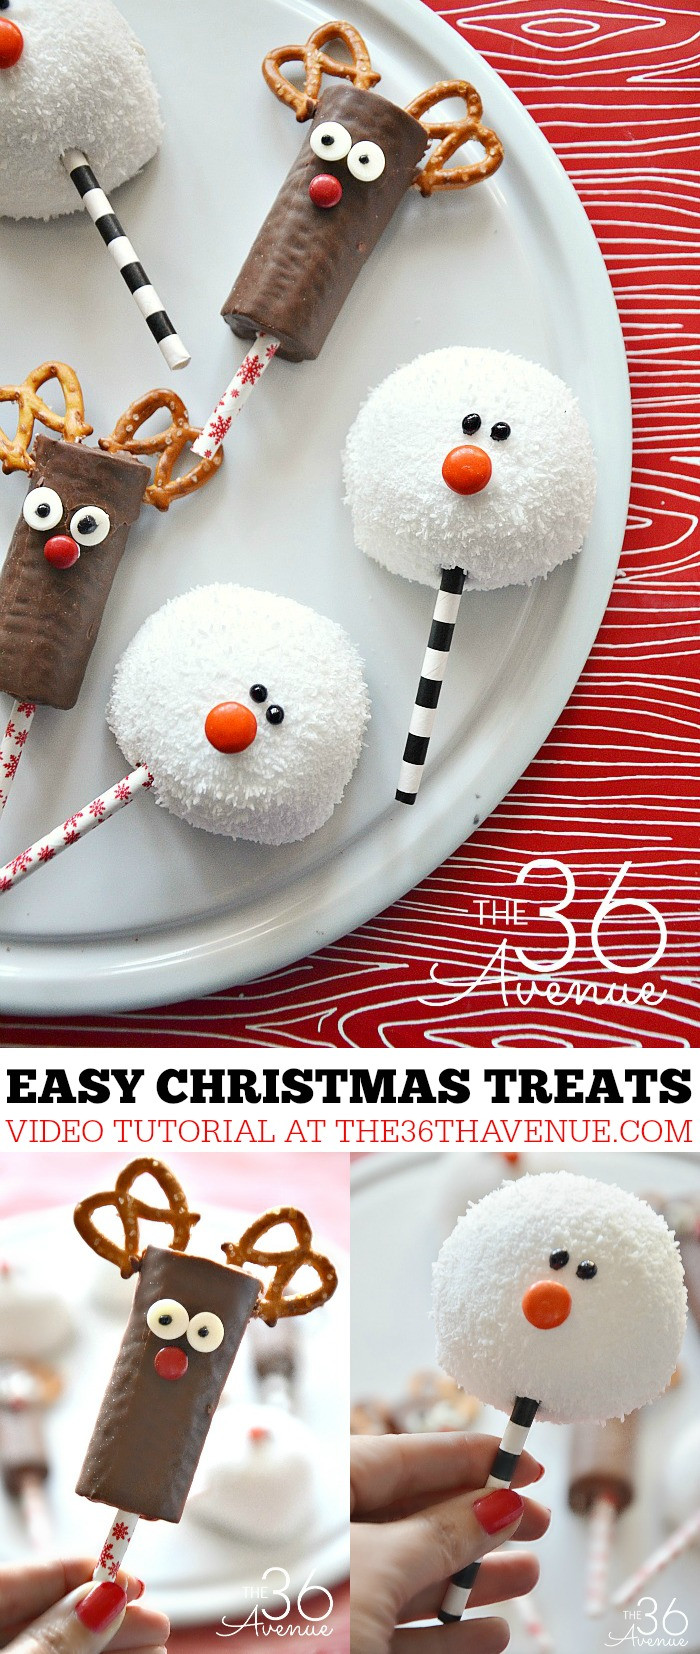 Cookies To Make For Christmas  Christmas Treats Reindeer and Snowman The 36th AVENUE